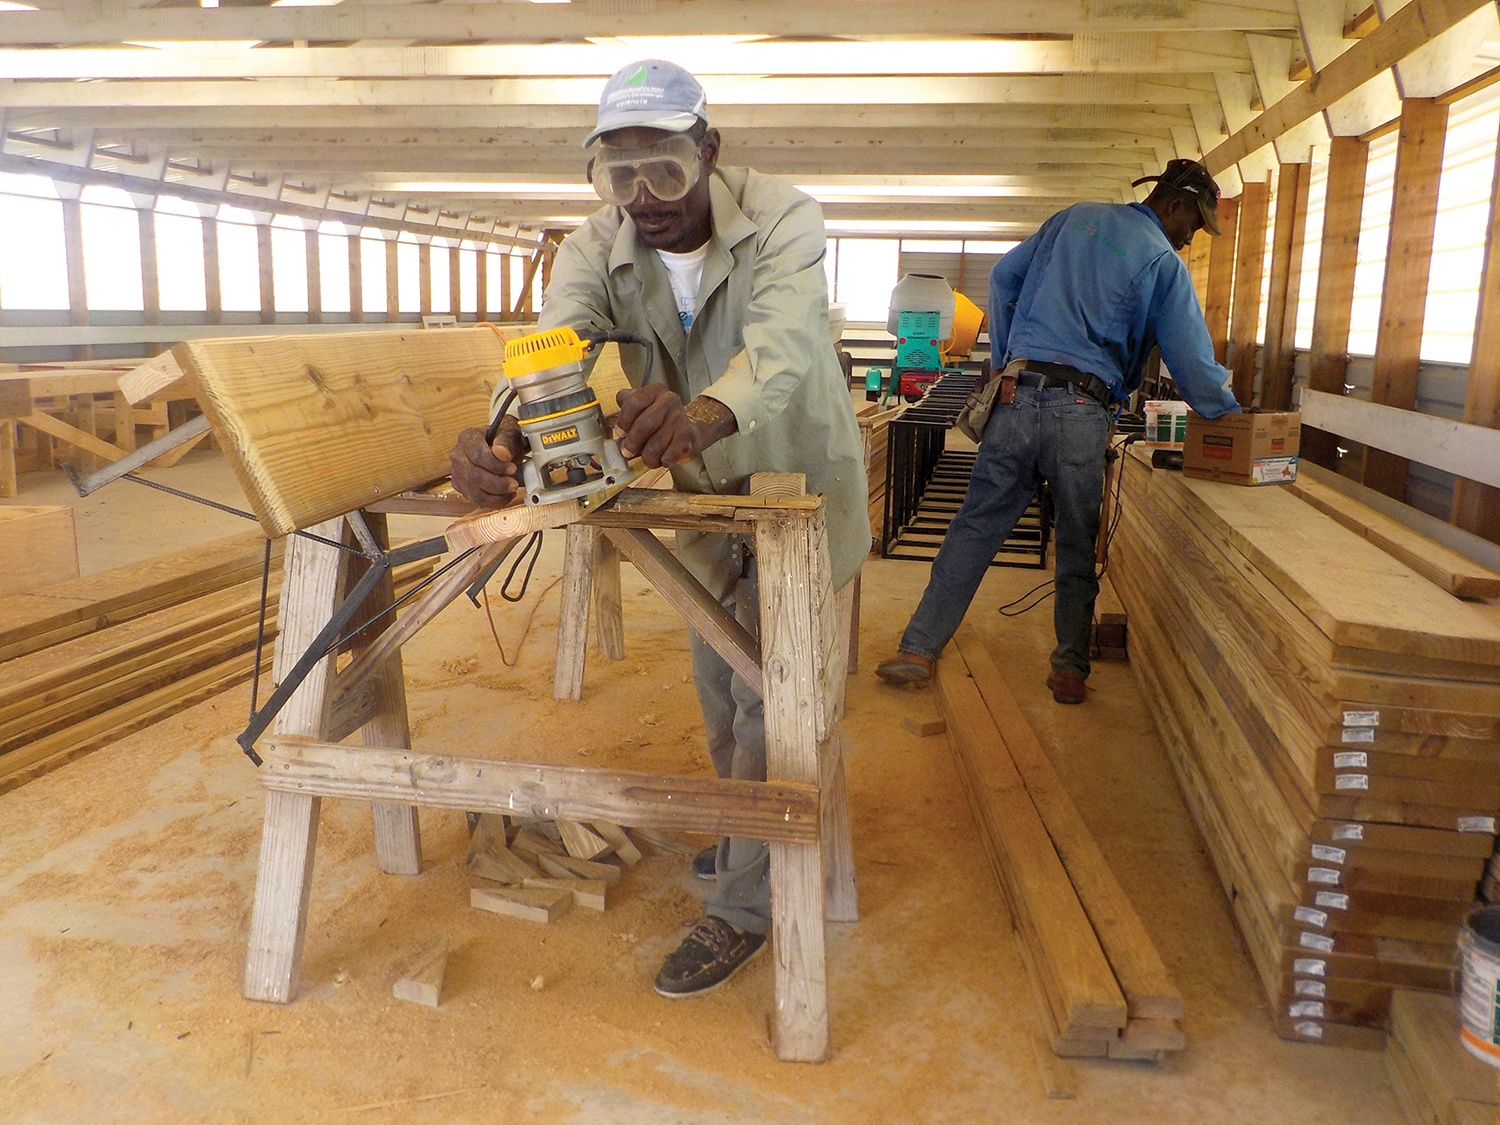 Our carpenter, Joseph Elson Clergeau (his nick name is Sonny), is building church benches at our mission.